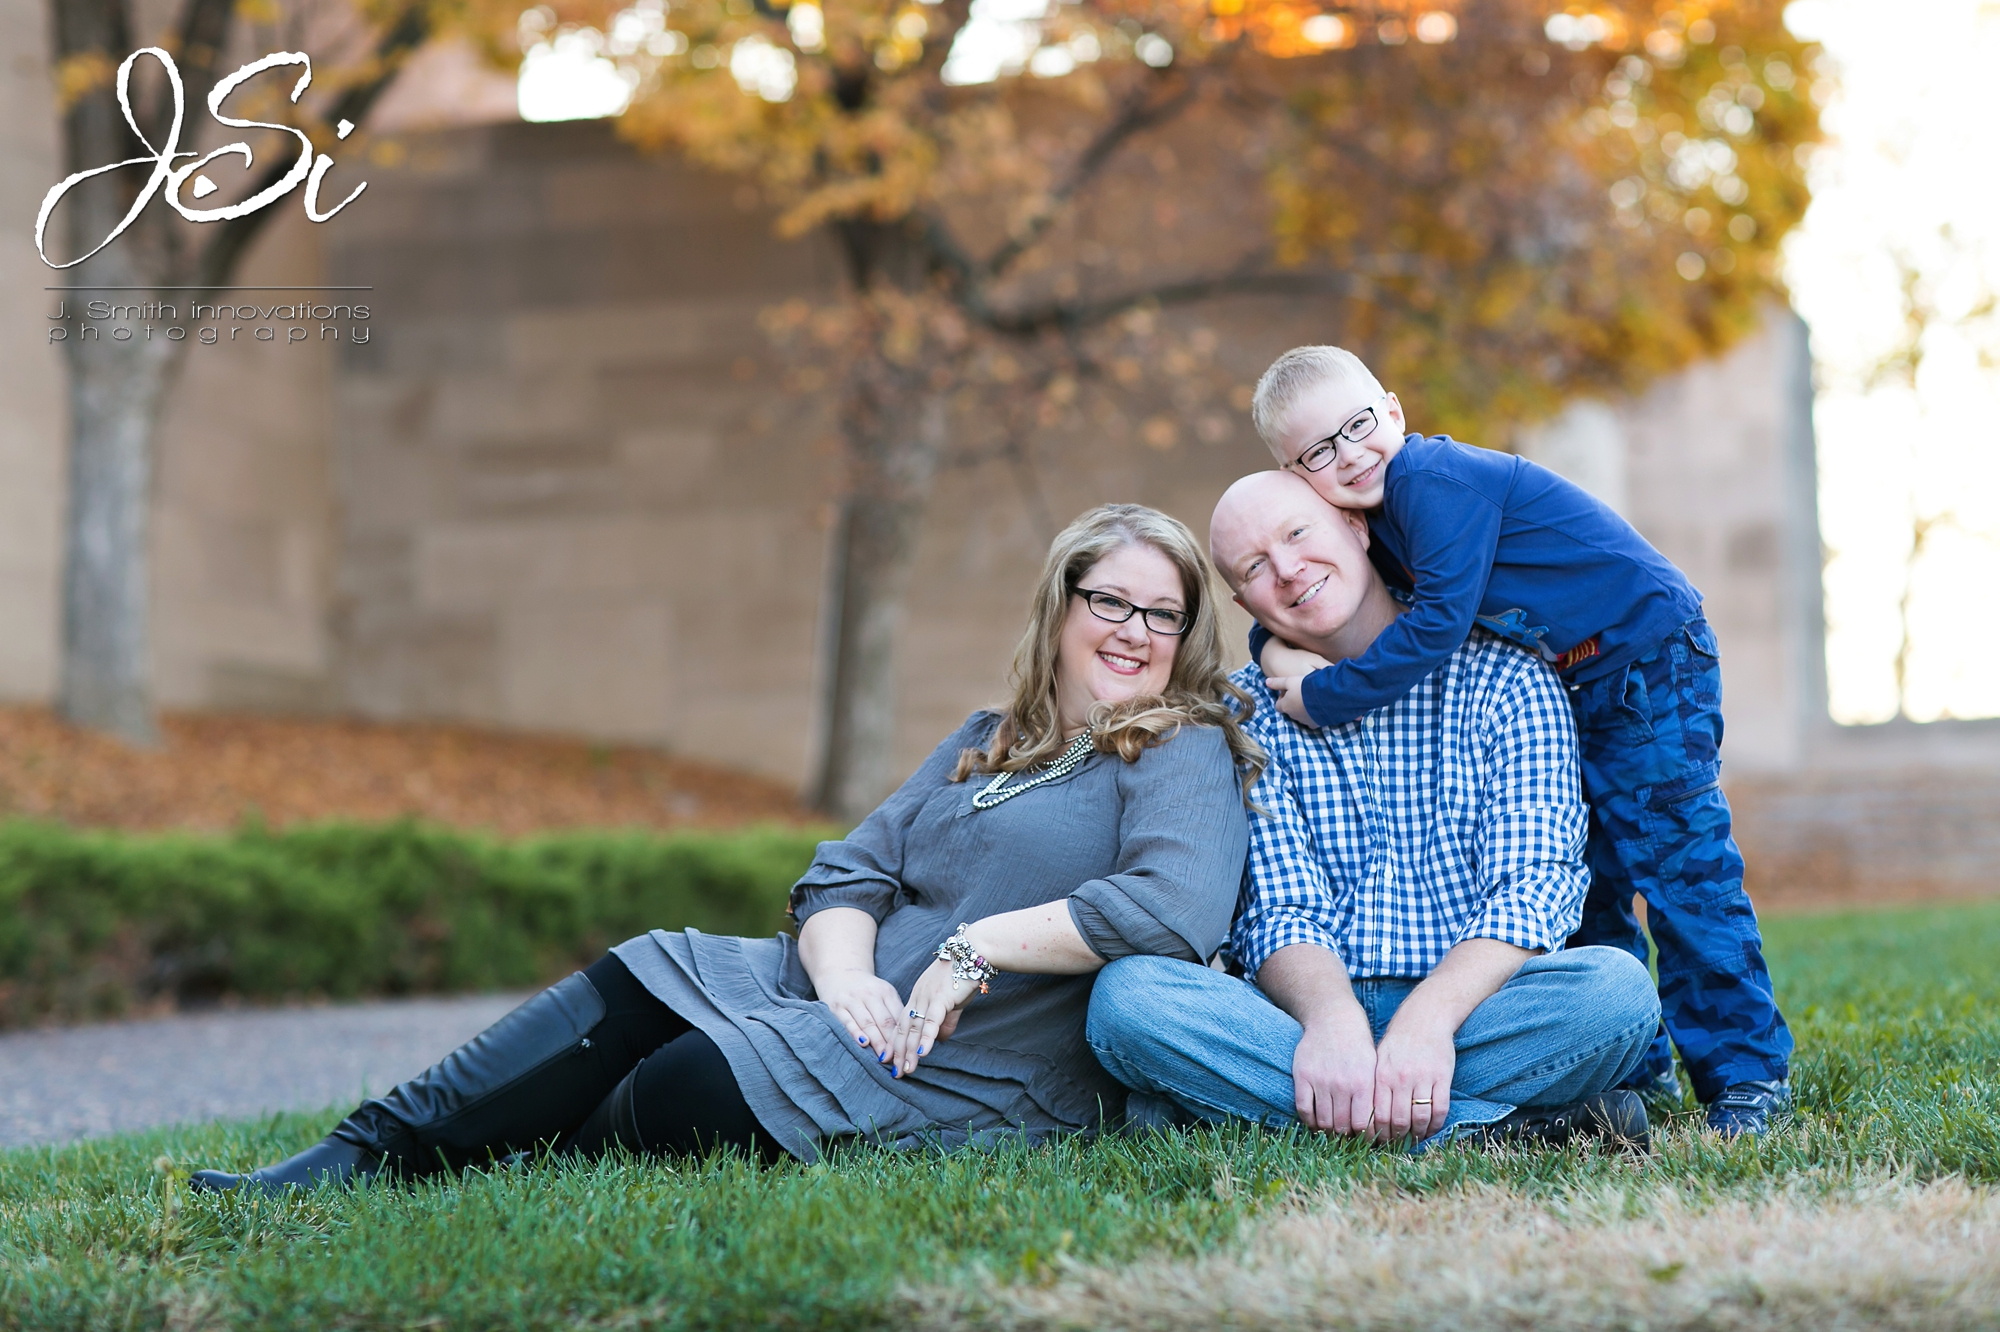 Kansas City Liberty Memorial fun relaxed family session photography blog